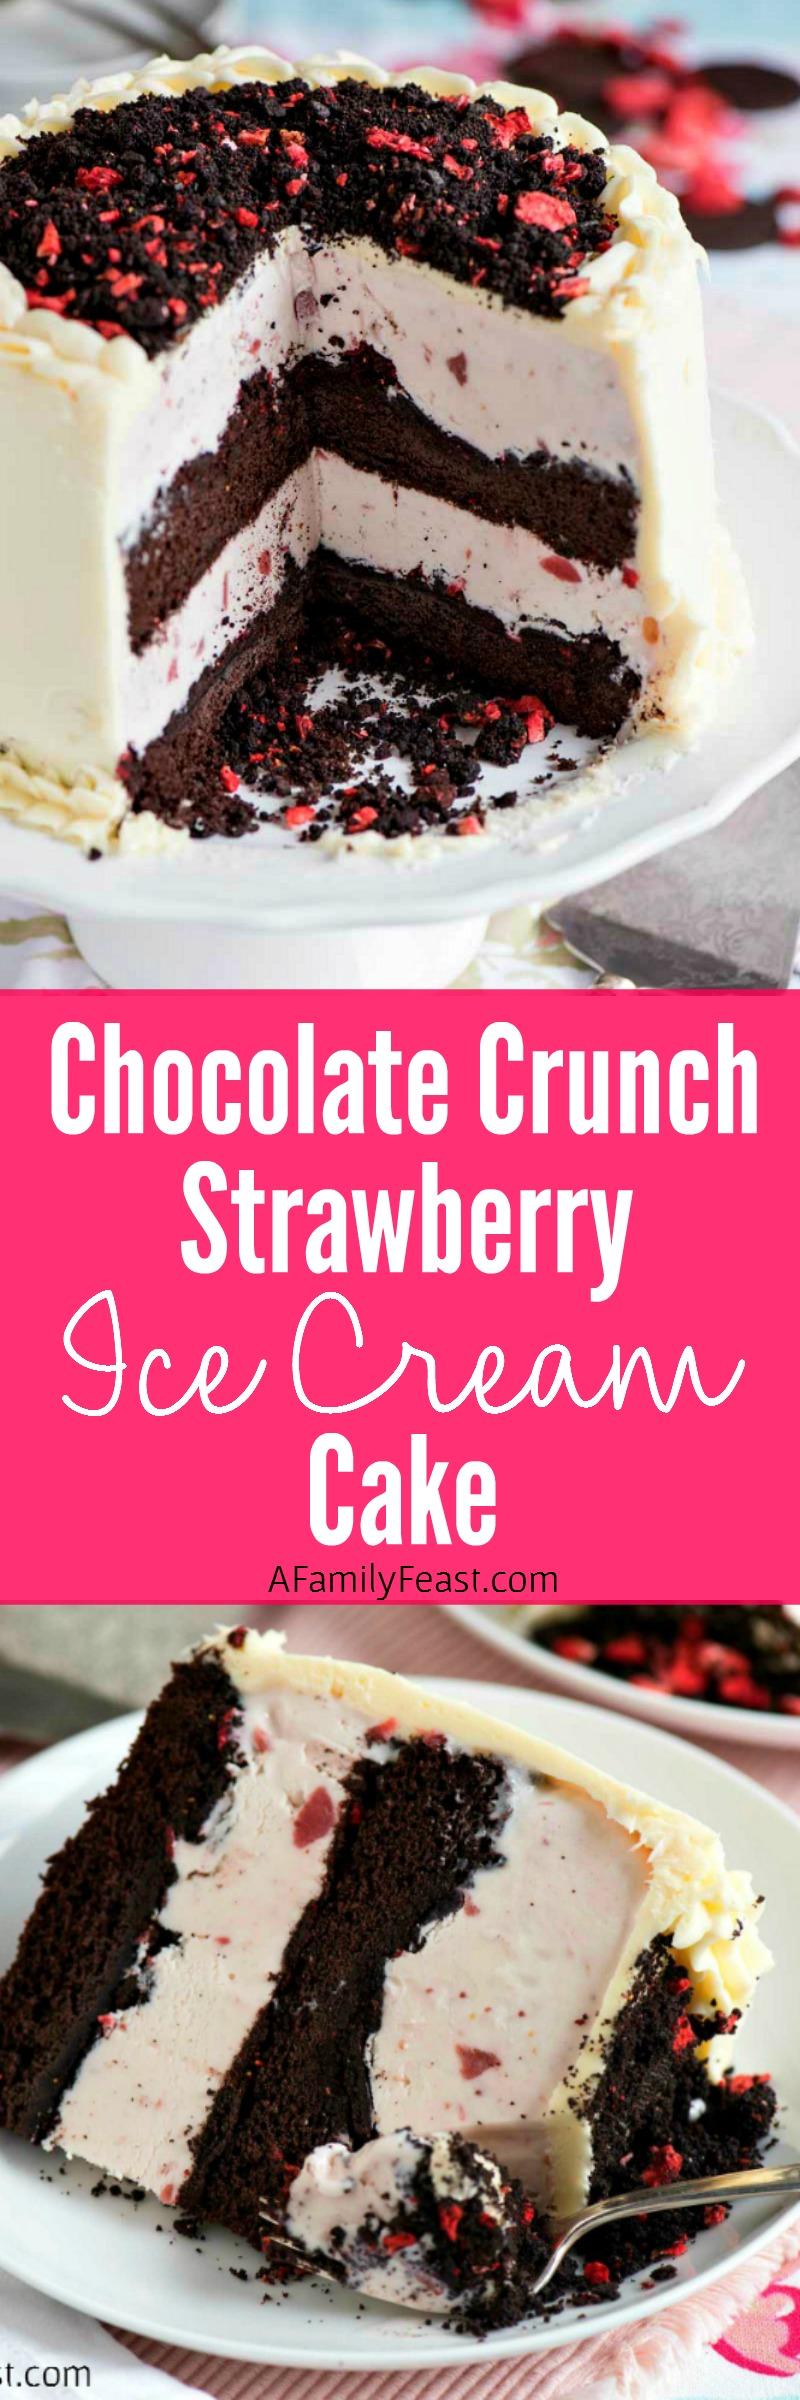 Chocolate Crunch Strawberry Ice Cream Cake - Easy to make cake perfect for any celebration!